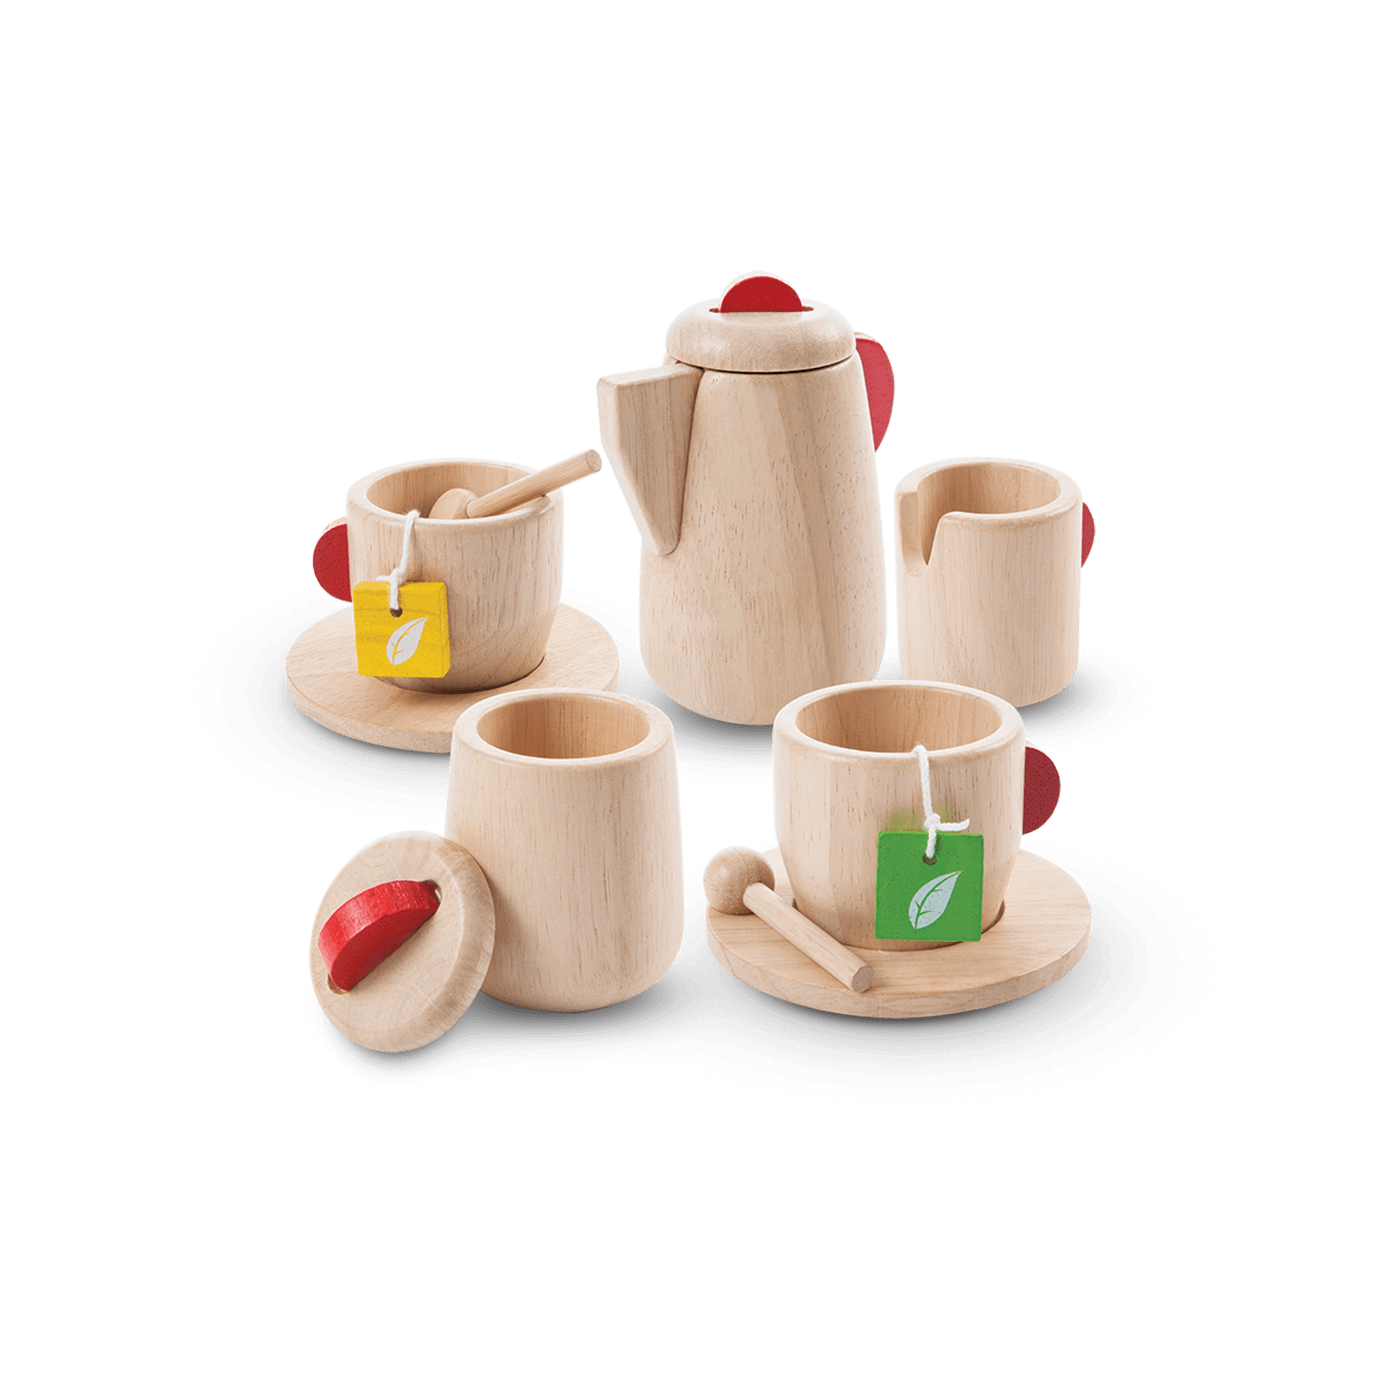 3433_PlanToys_TEA_SET_Pretend_Play_Fine_Motor_Imagination_Social_Language_and_Communications_Coordination_2yrs_3yrs_Wooden_toys_Education_toys_Safety_Toys_Non-toxic_0.png